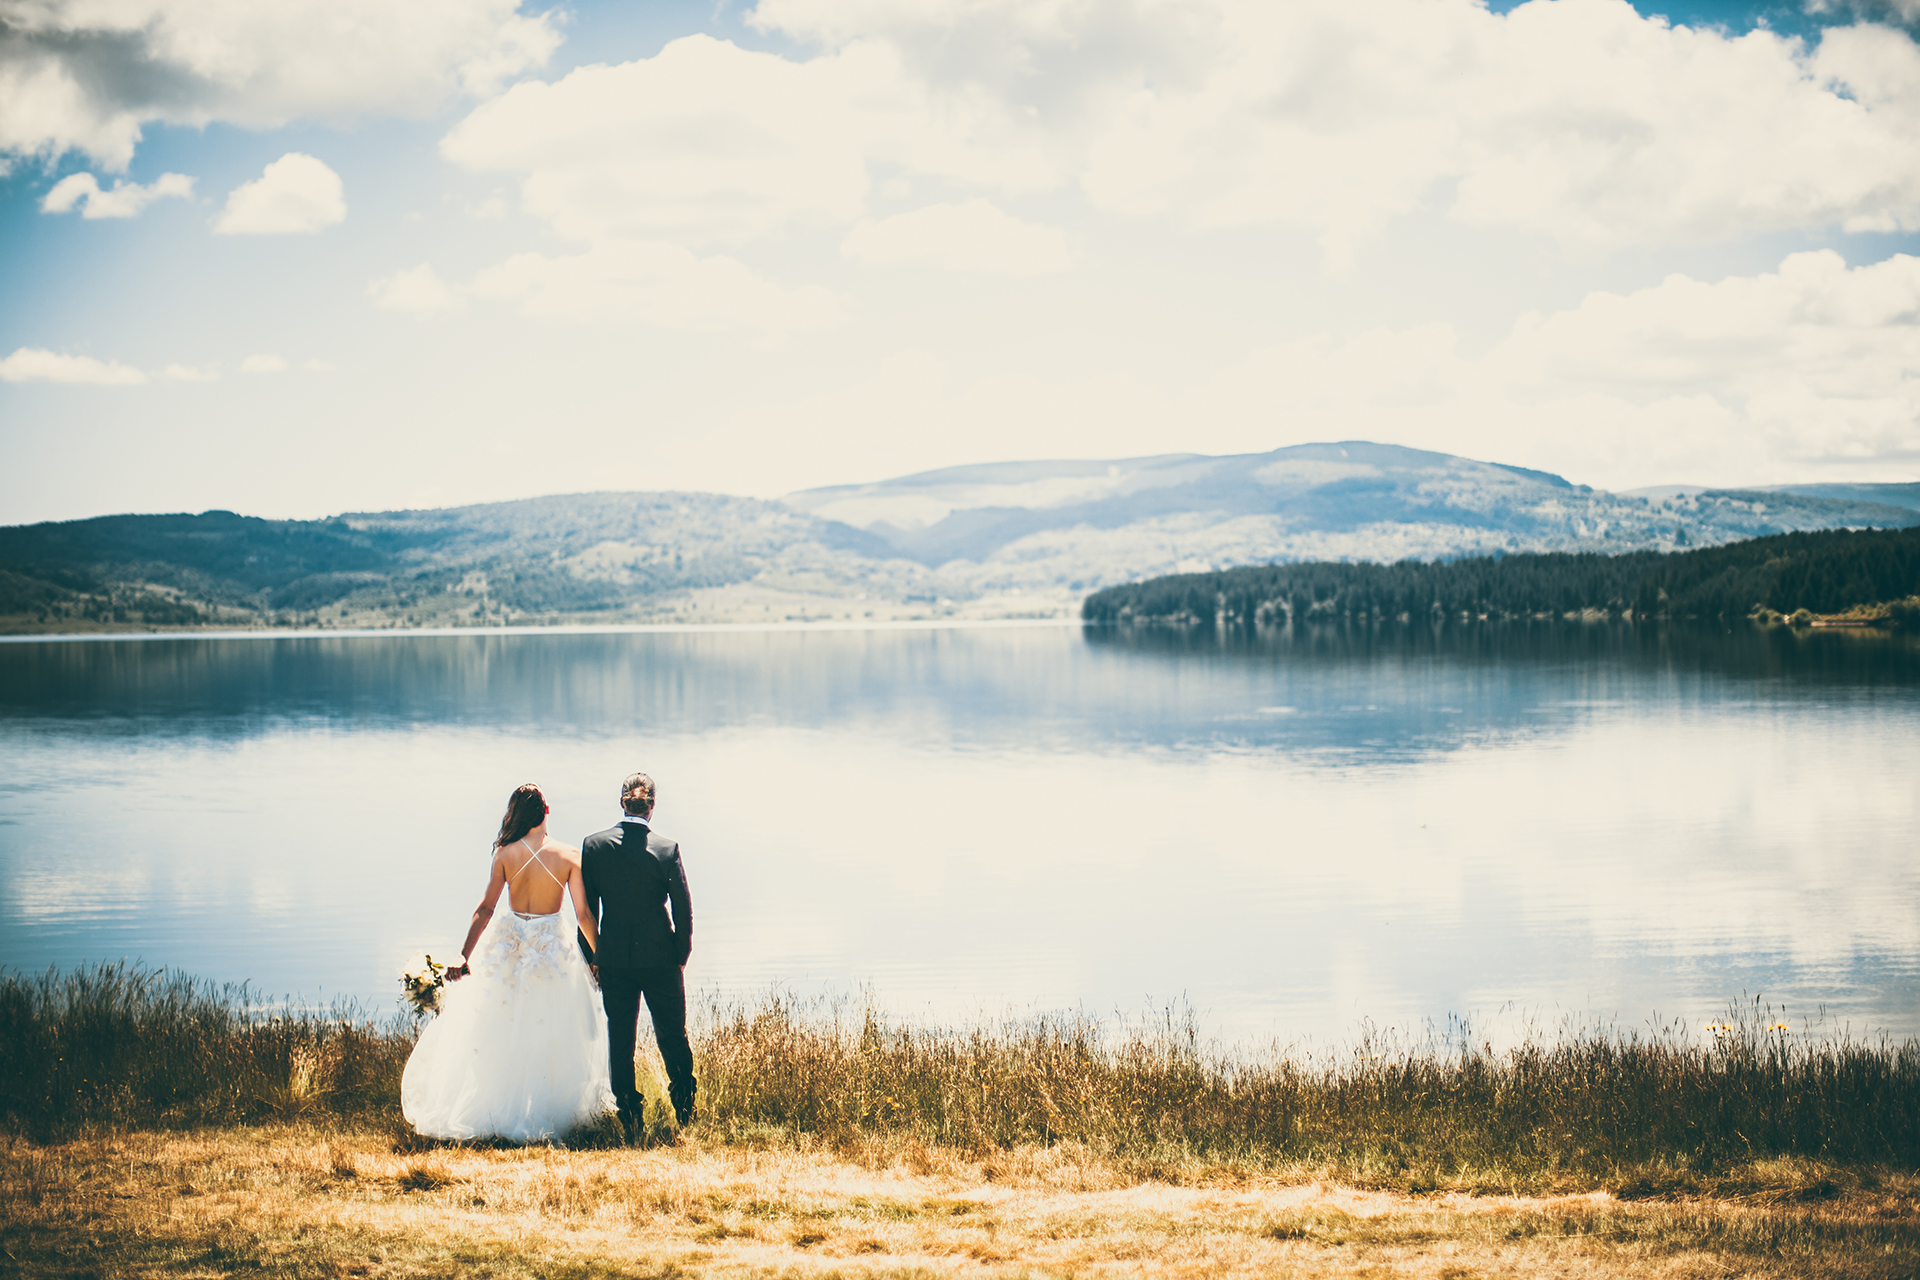 Portrait of a couple on their wedding day in nature